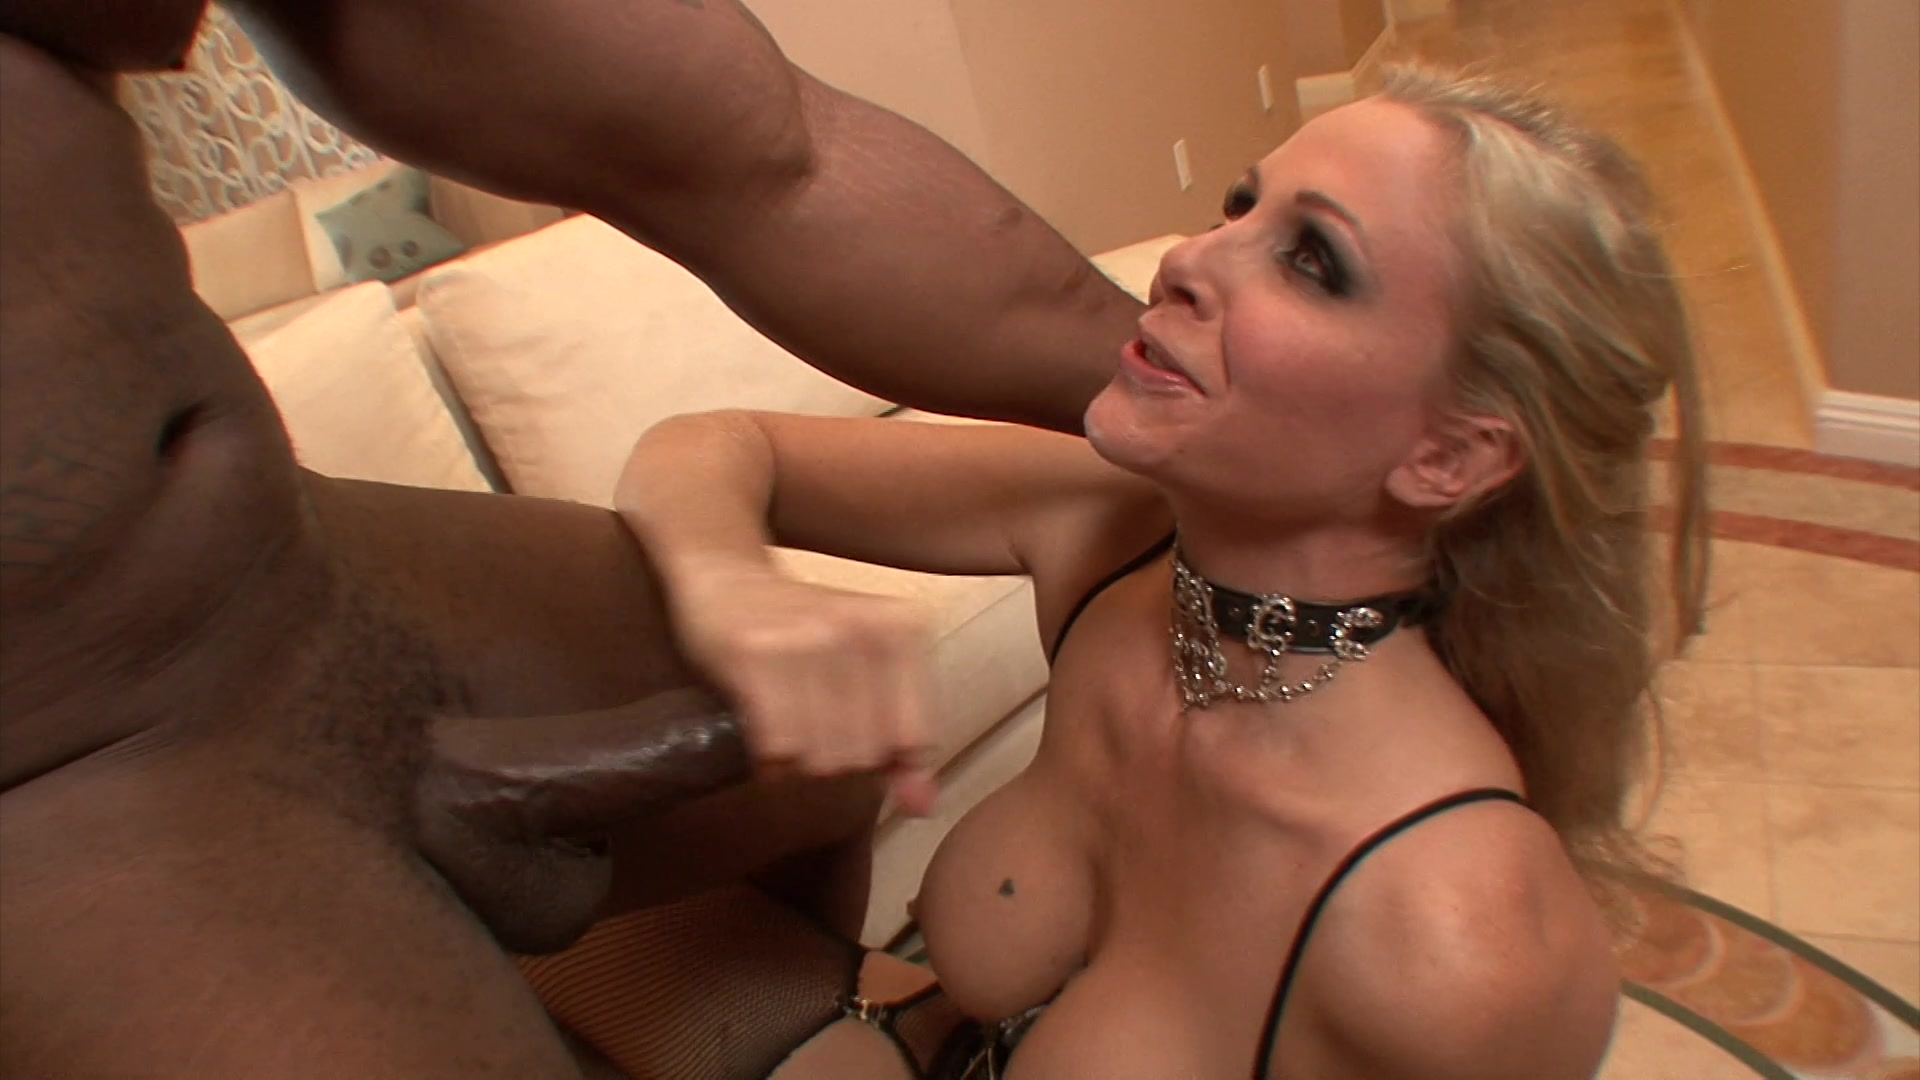 Hot Classy Milf Julia Ann Takes A Cock In Her Mouth Hands